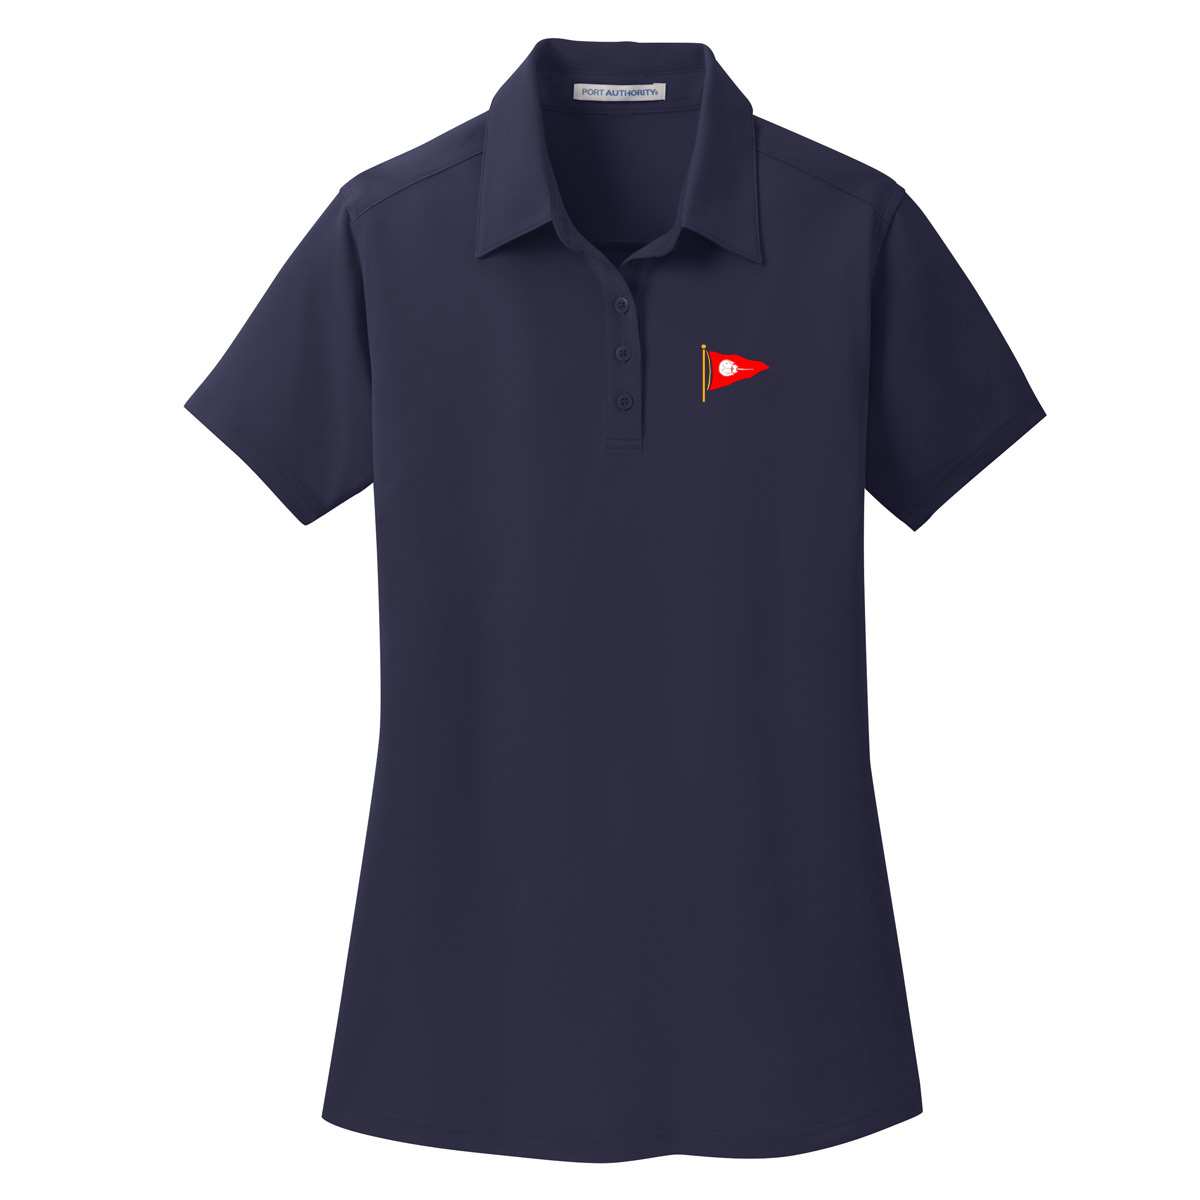 SHYC - WOMEN'S TECH POLO